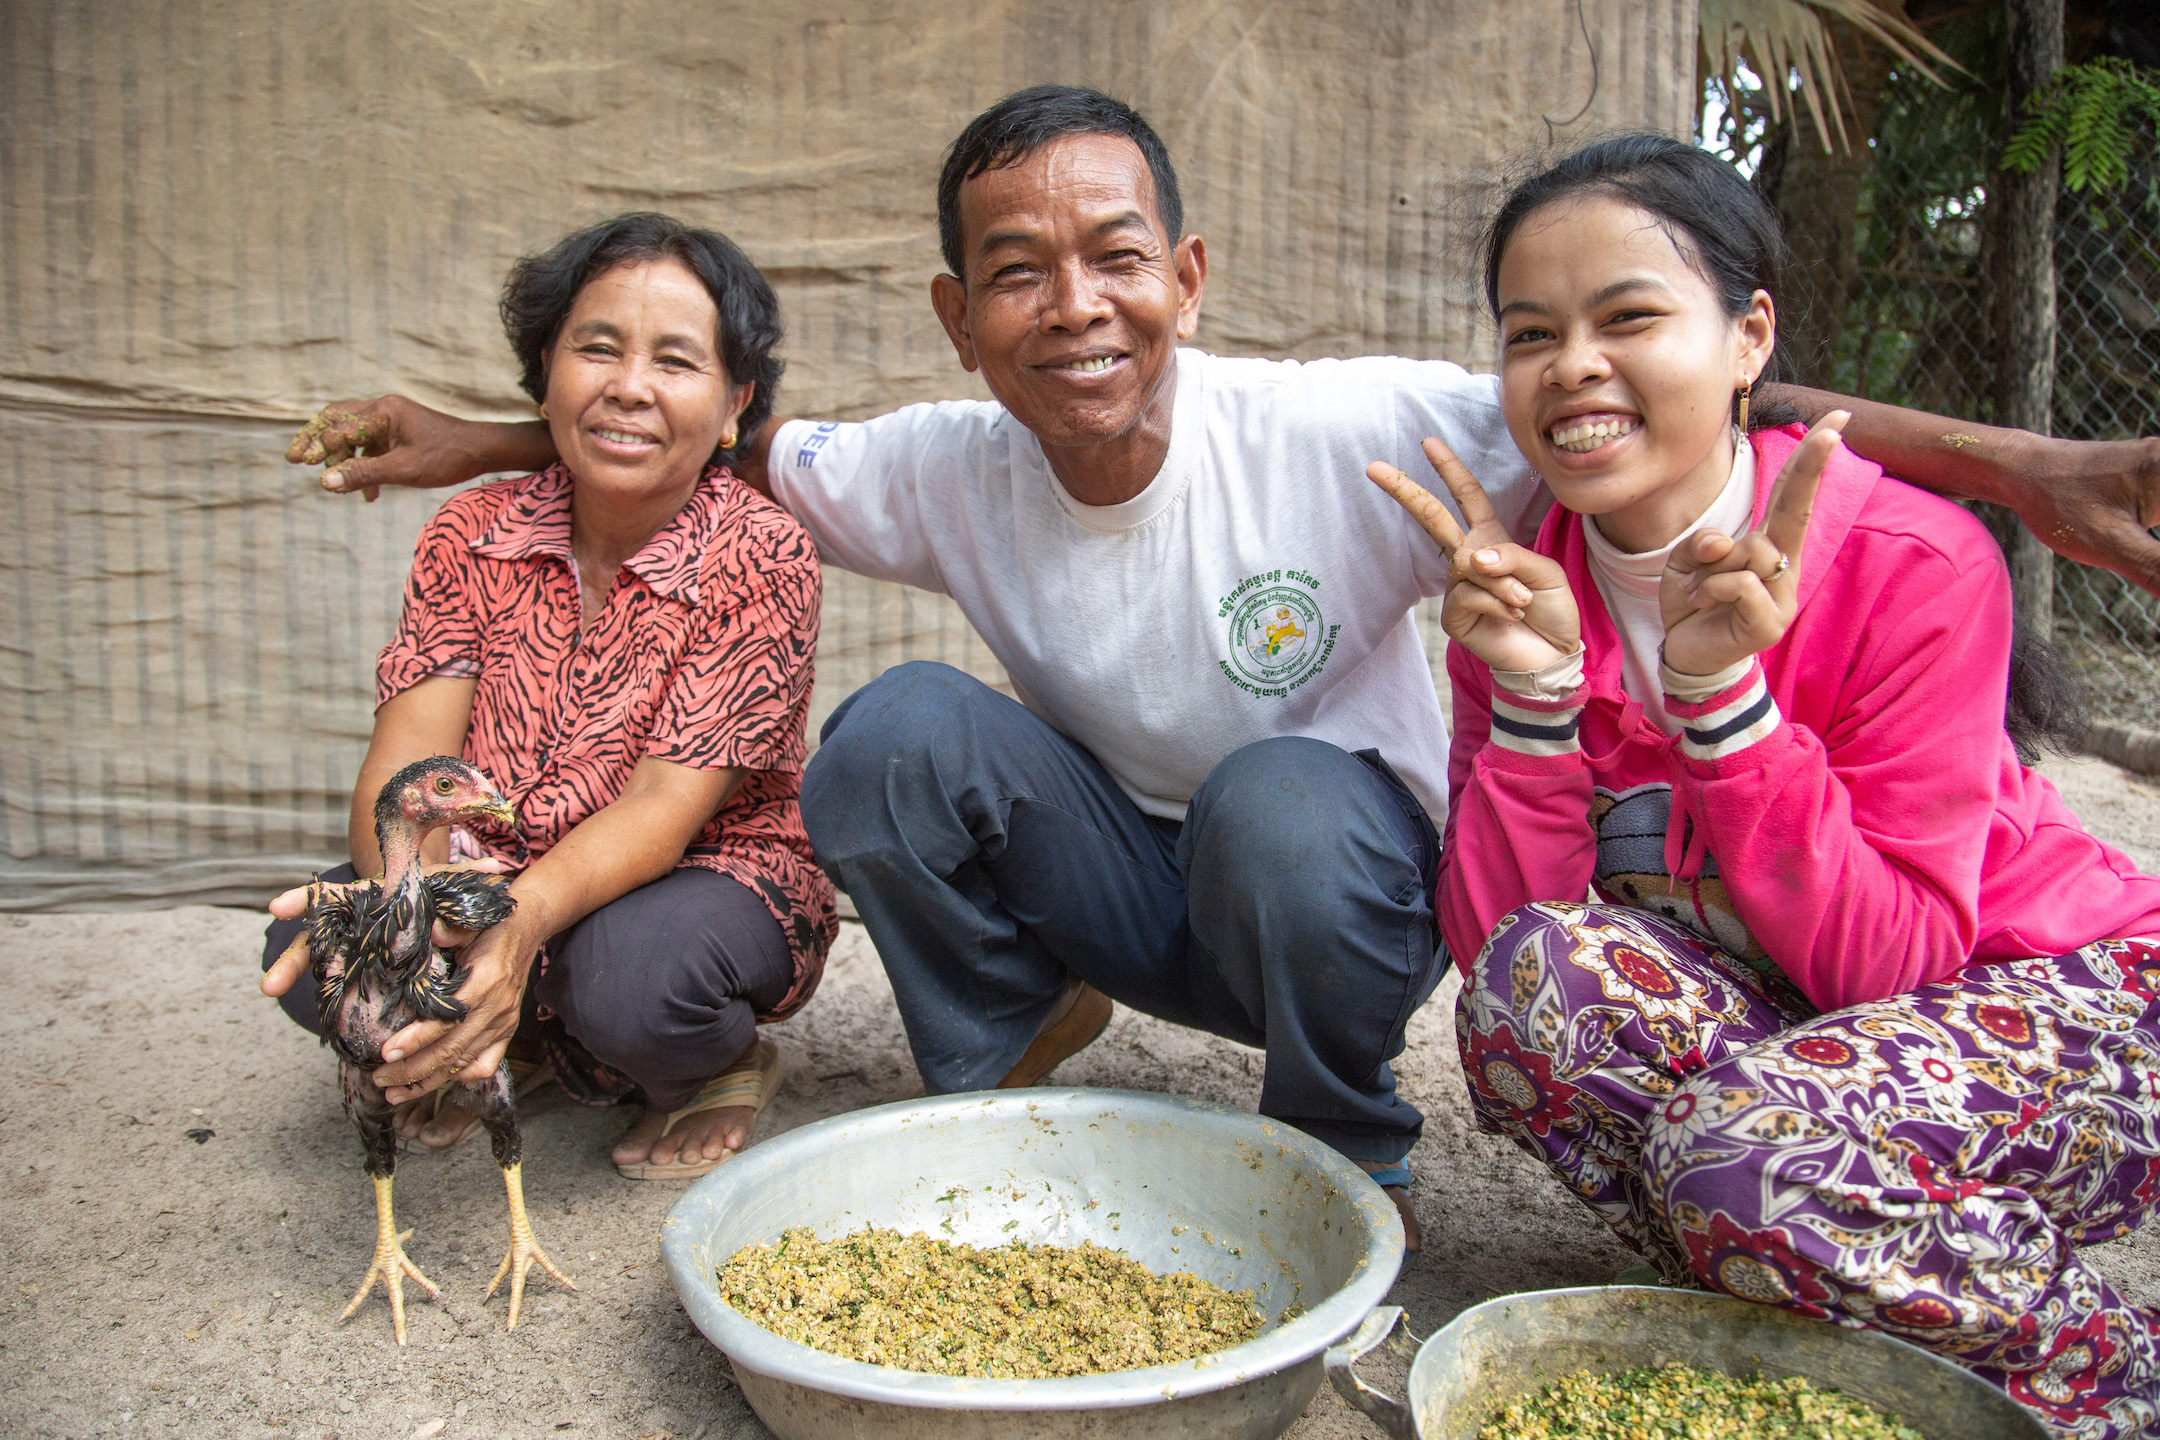 Mao Neng, her husband Prak Bon and their daughter Brak Syenech sit together smiling with a small chicken.